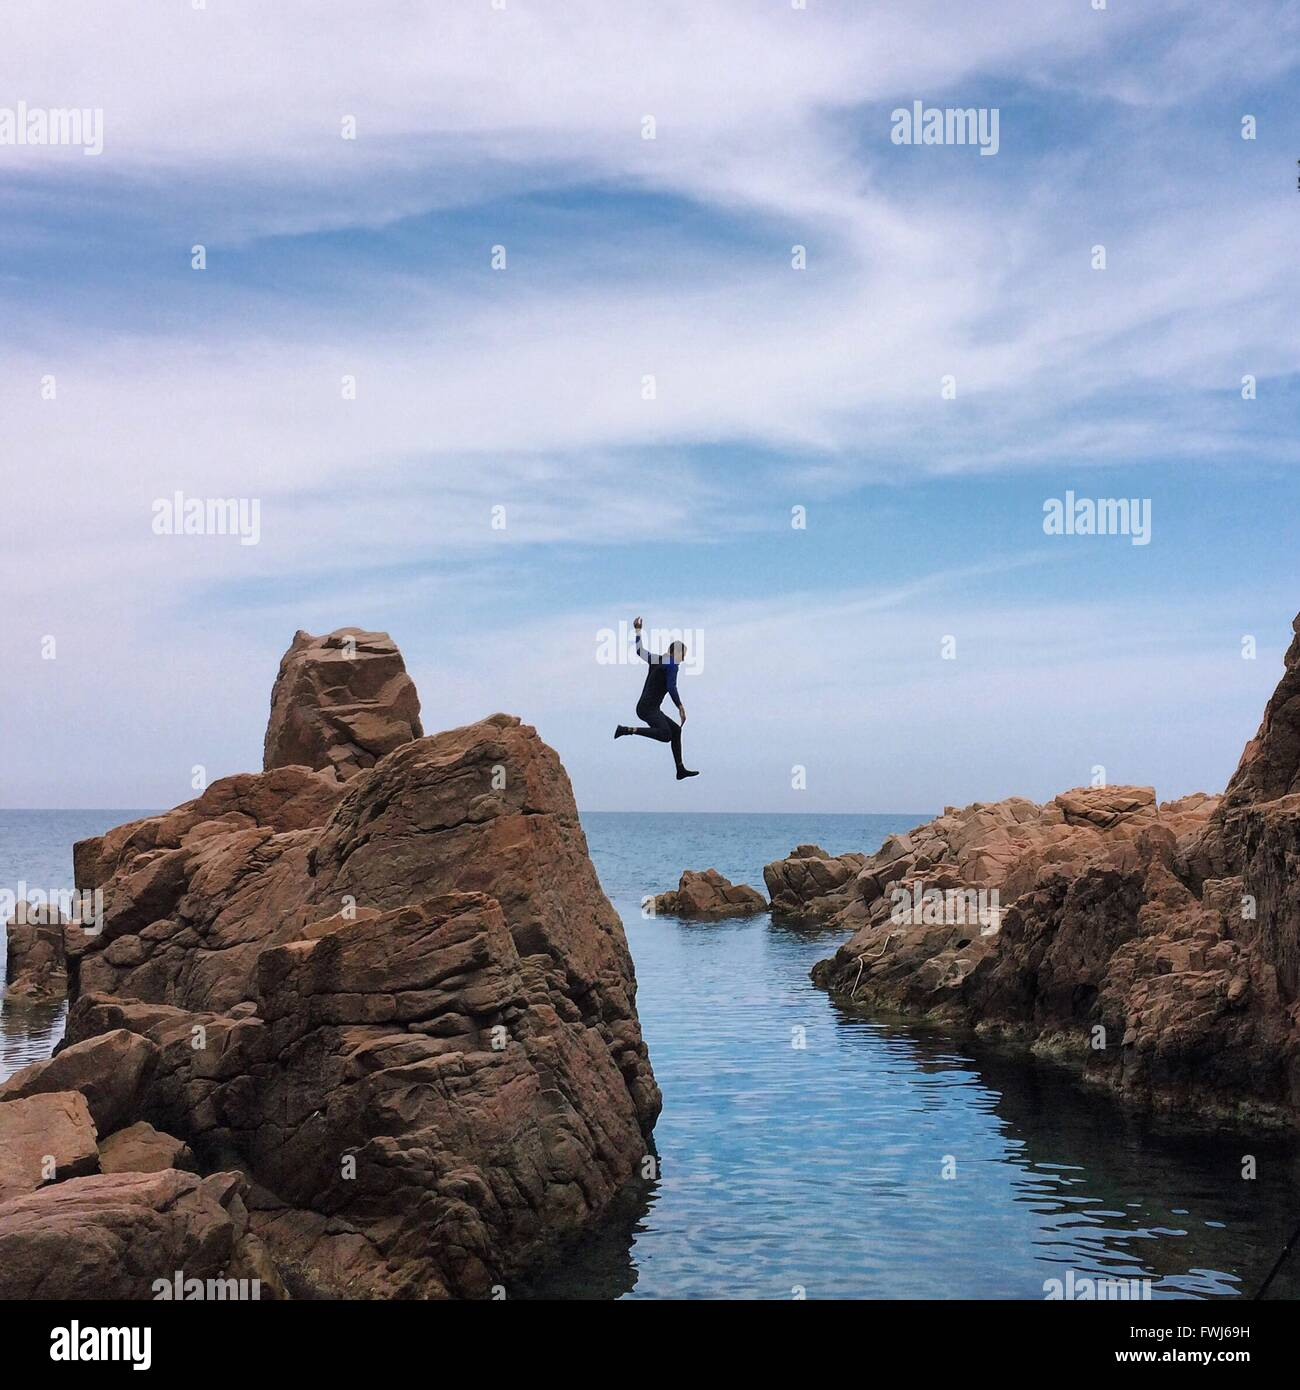 Man Jumping In Sea Against Cloudy Sky - Stock Image